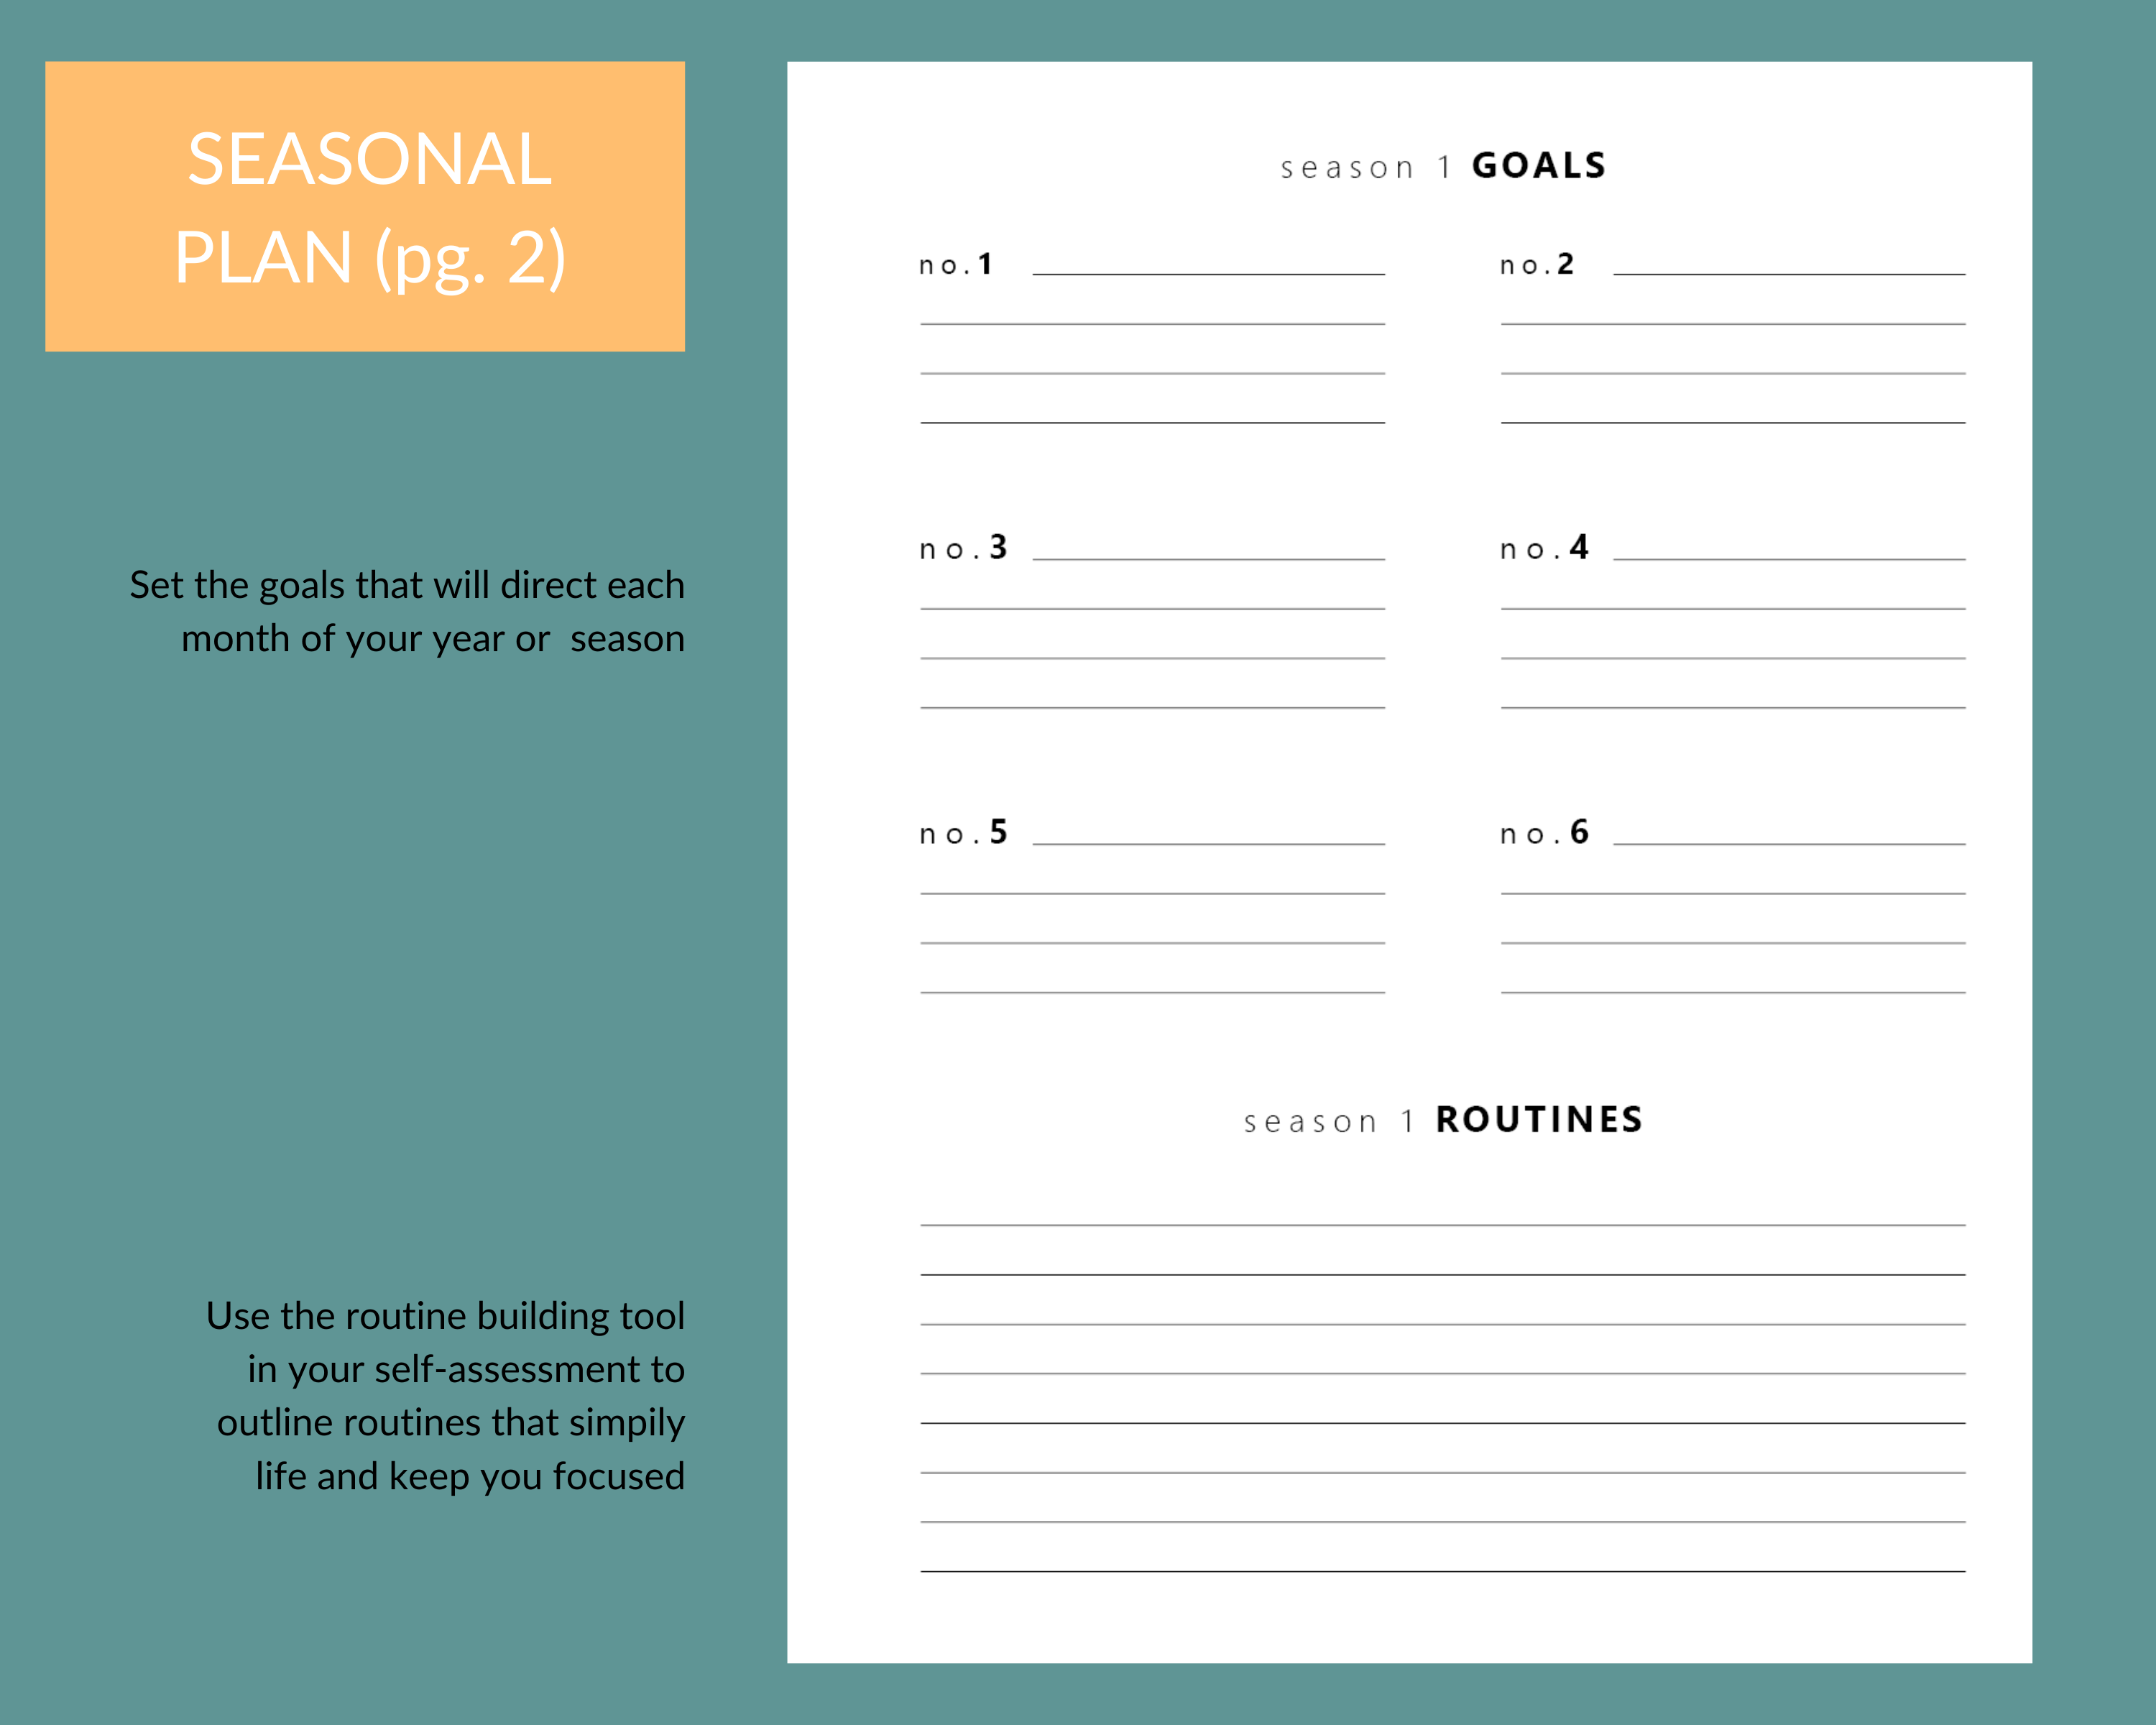 goal setting tool for Christian women